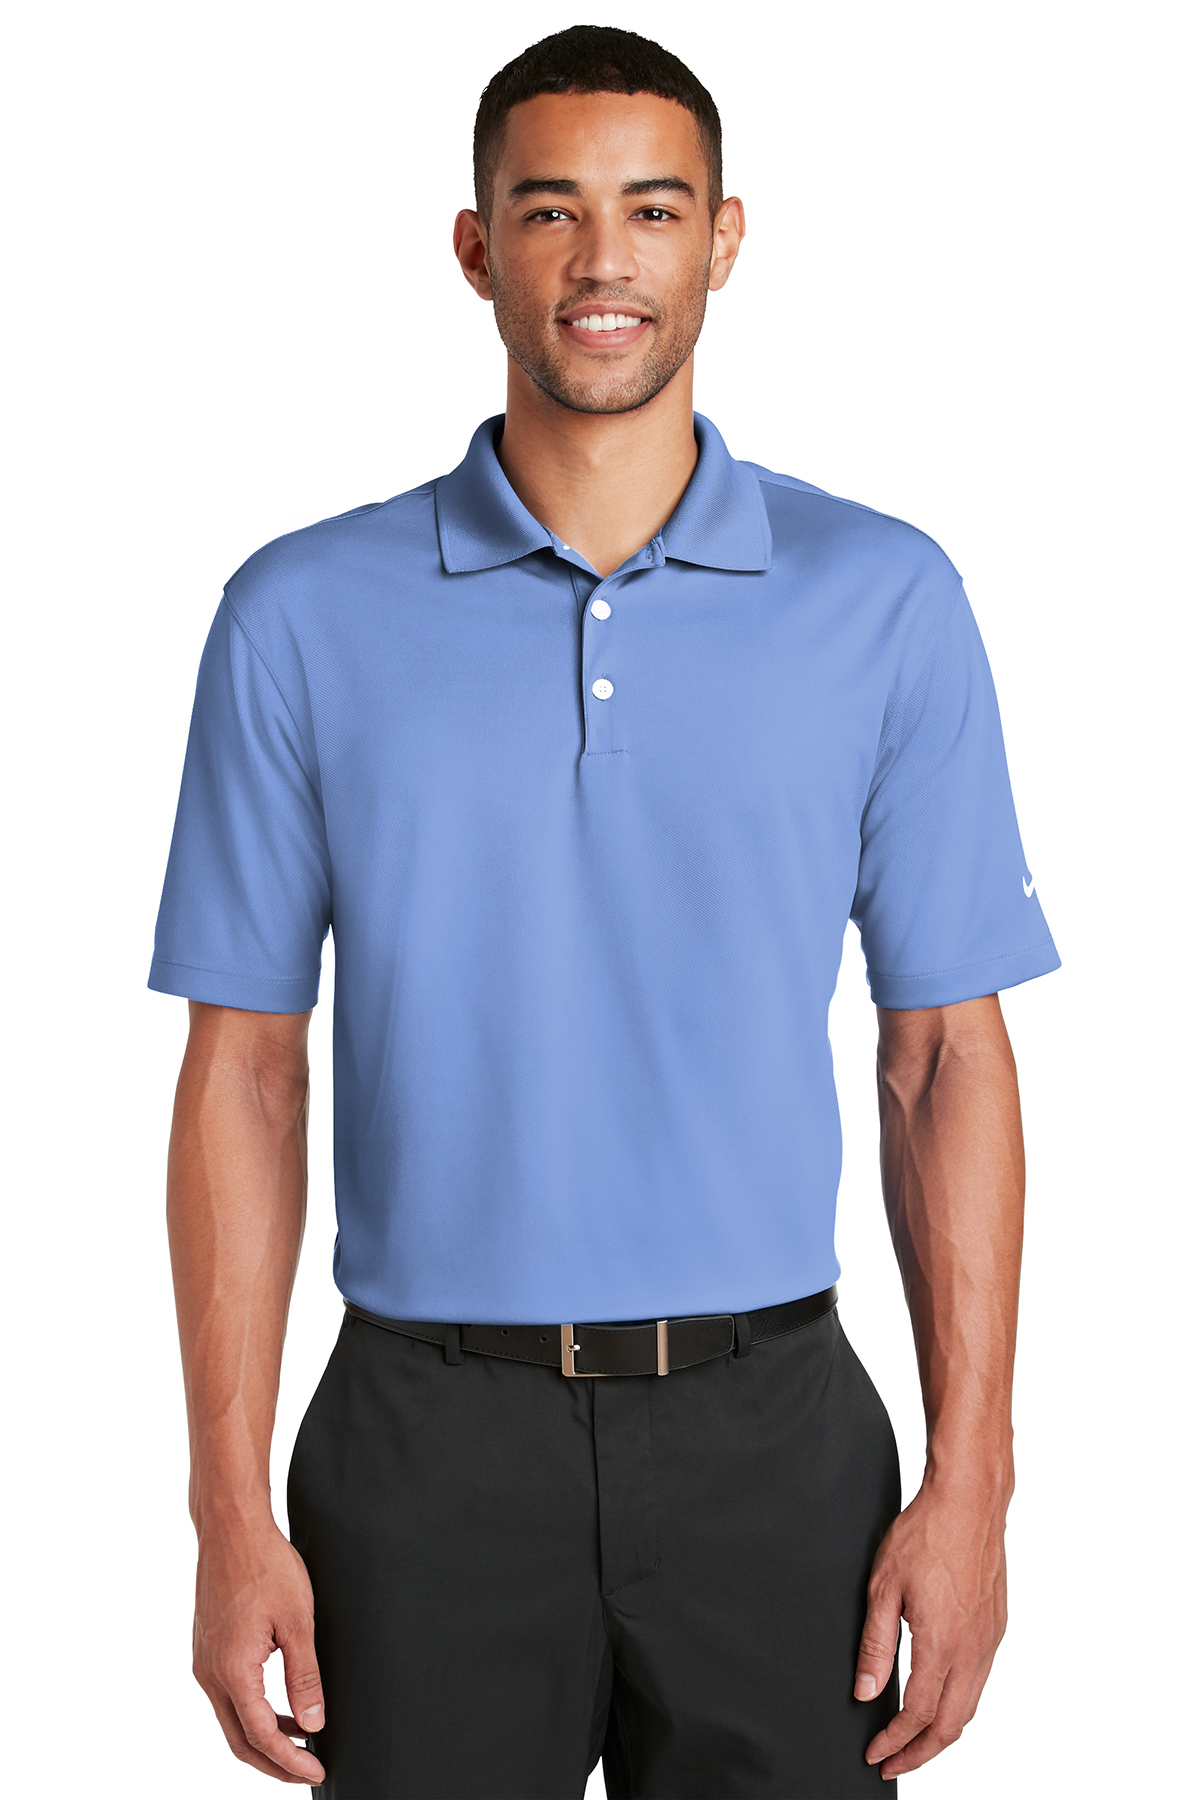 aa811166 Nike Dri-FIT Micro Pique Polo | Performance | Polos/Knits | SanMar